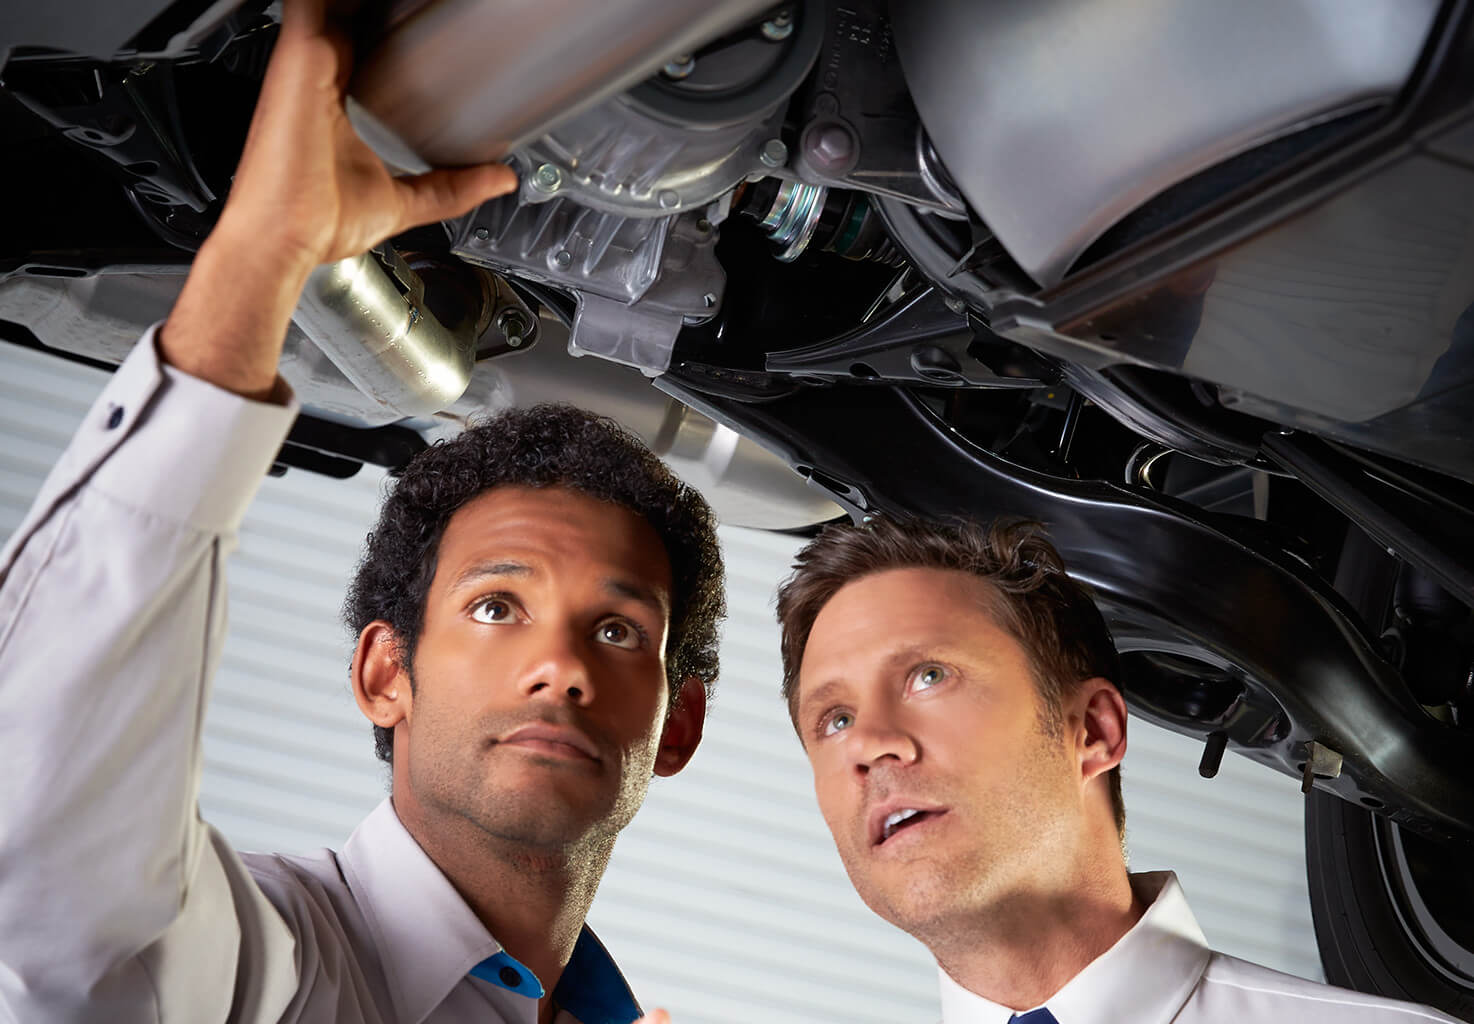 two men inspecting the workings of a car